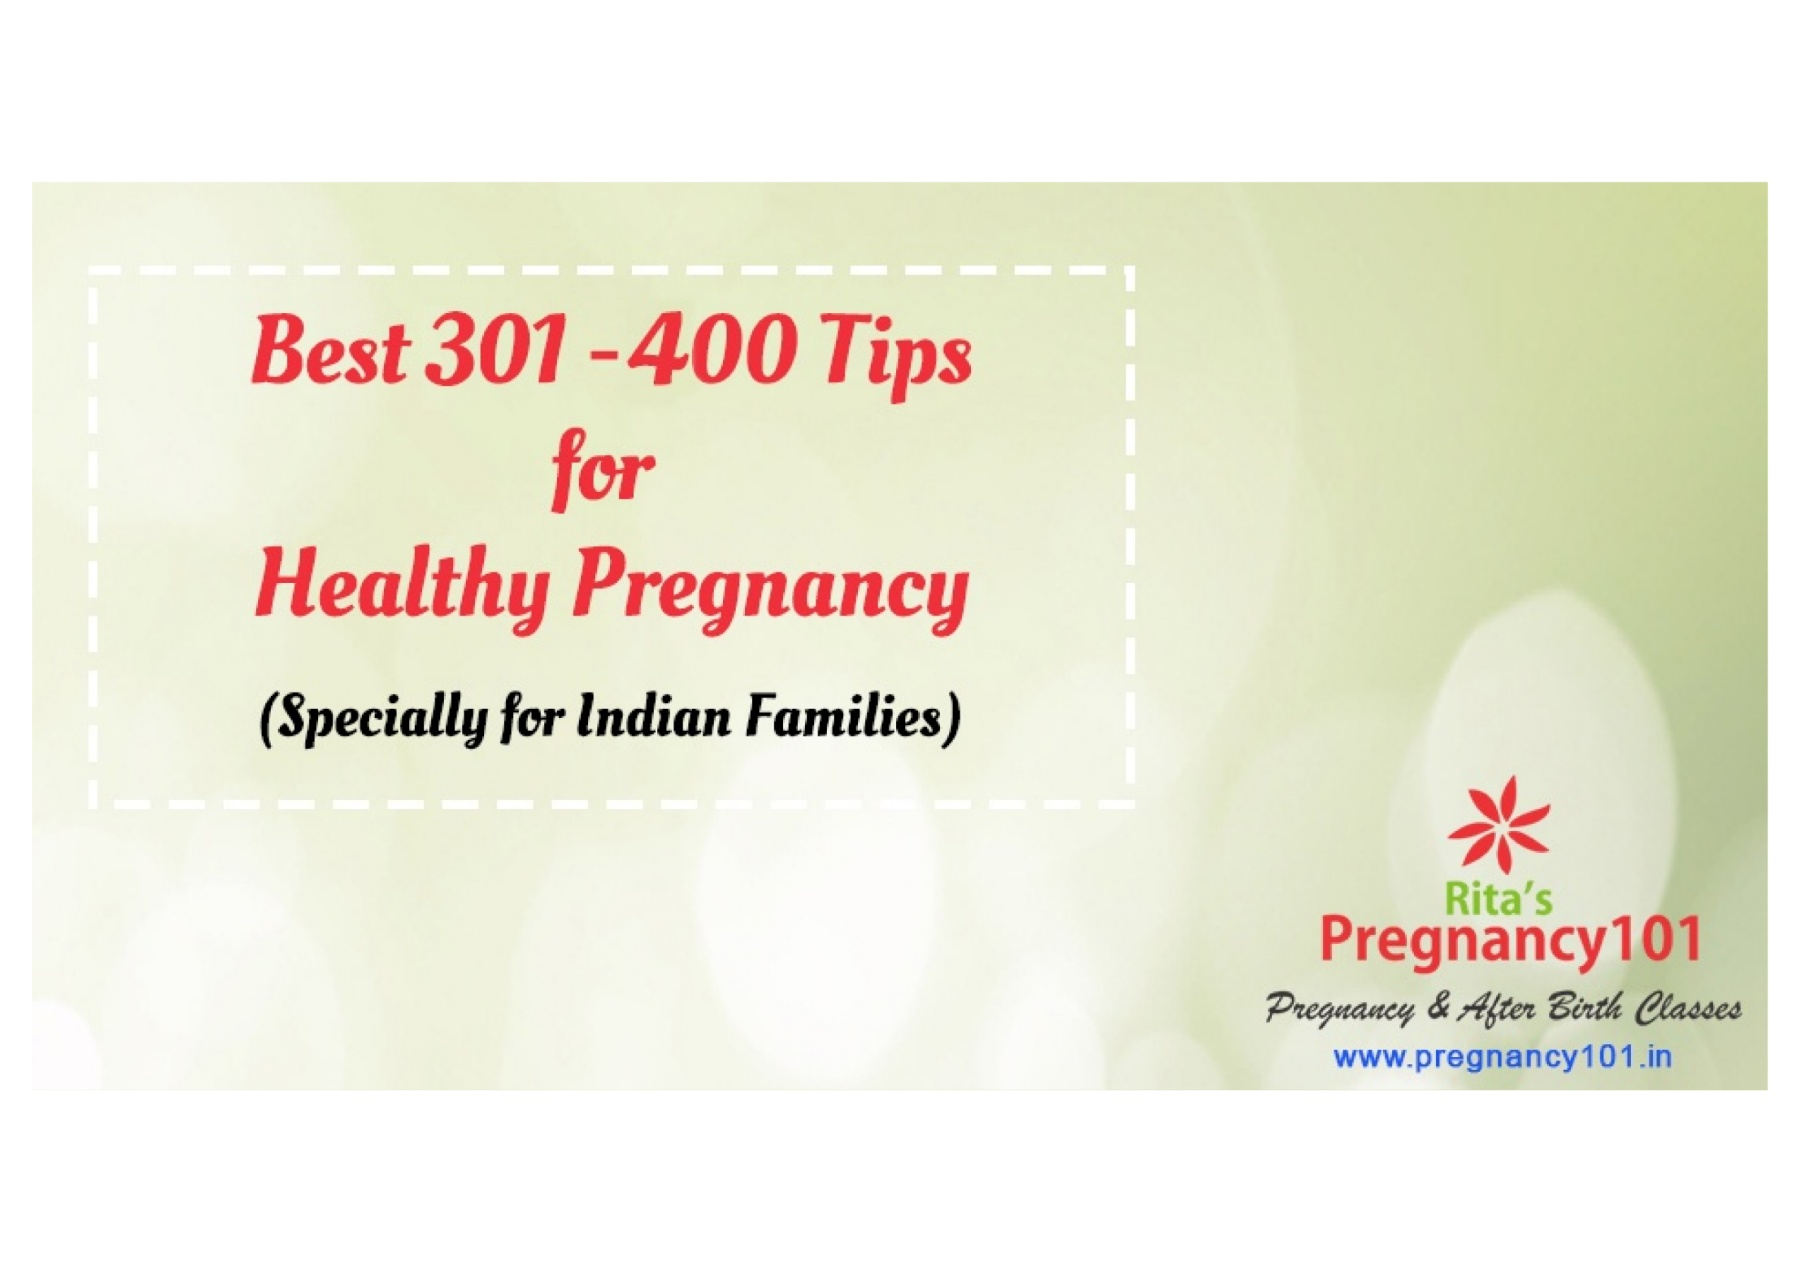 Another 100 Tips for Healthy Pregnancy (301 - 400)